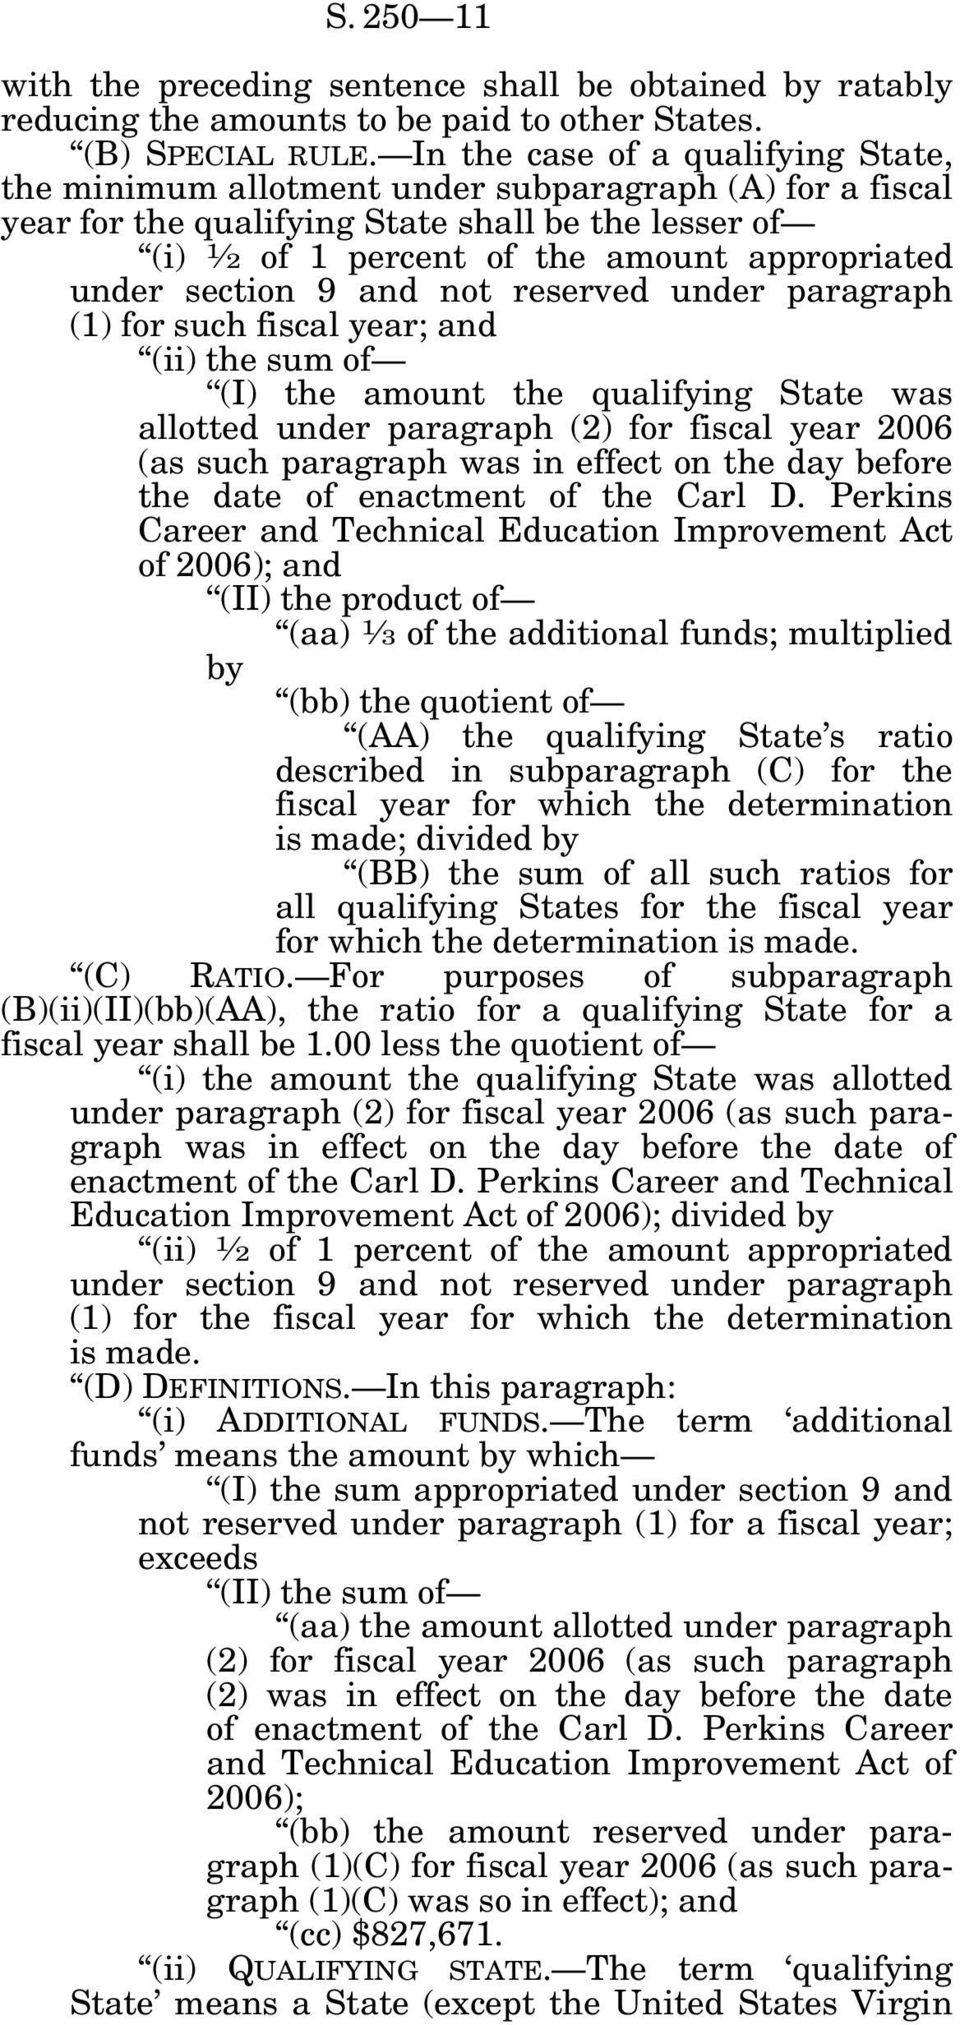 section 9 and not reserved under paragraph (1) for such fiscal year; and (ii) the sum of (I) the amount the qualifying State was allotted under paragraph (2) for fiscal year 2006 (as such paragraph